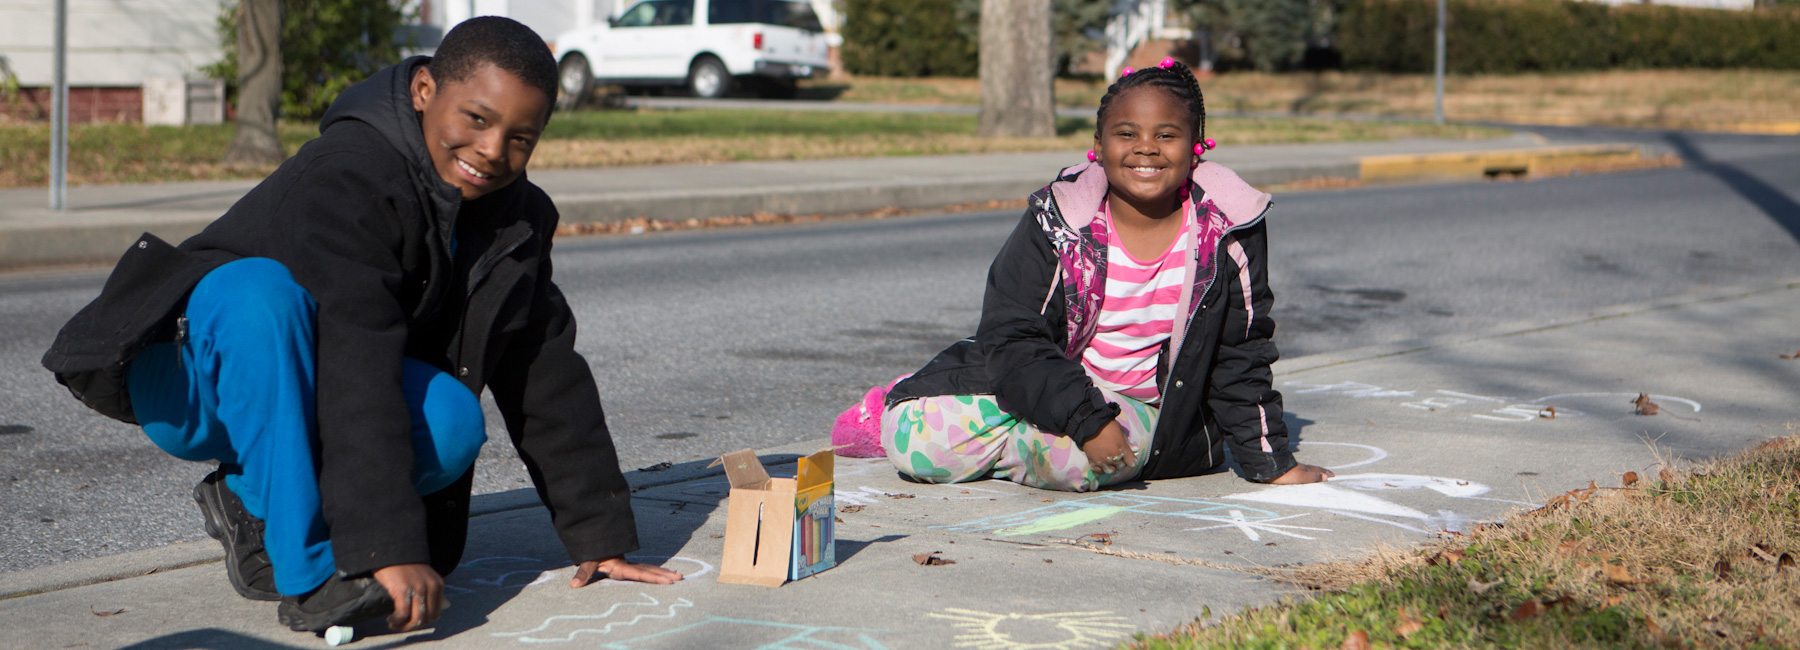 Children on the sidewalk - Salisbury Neighborhood Housing Services, Inc.